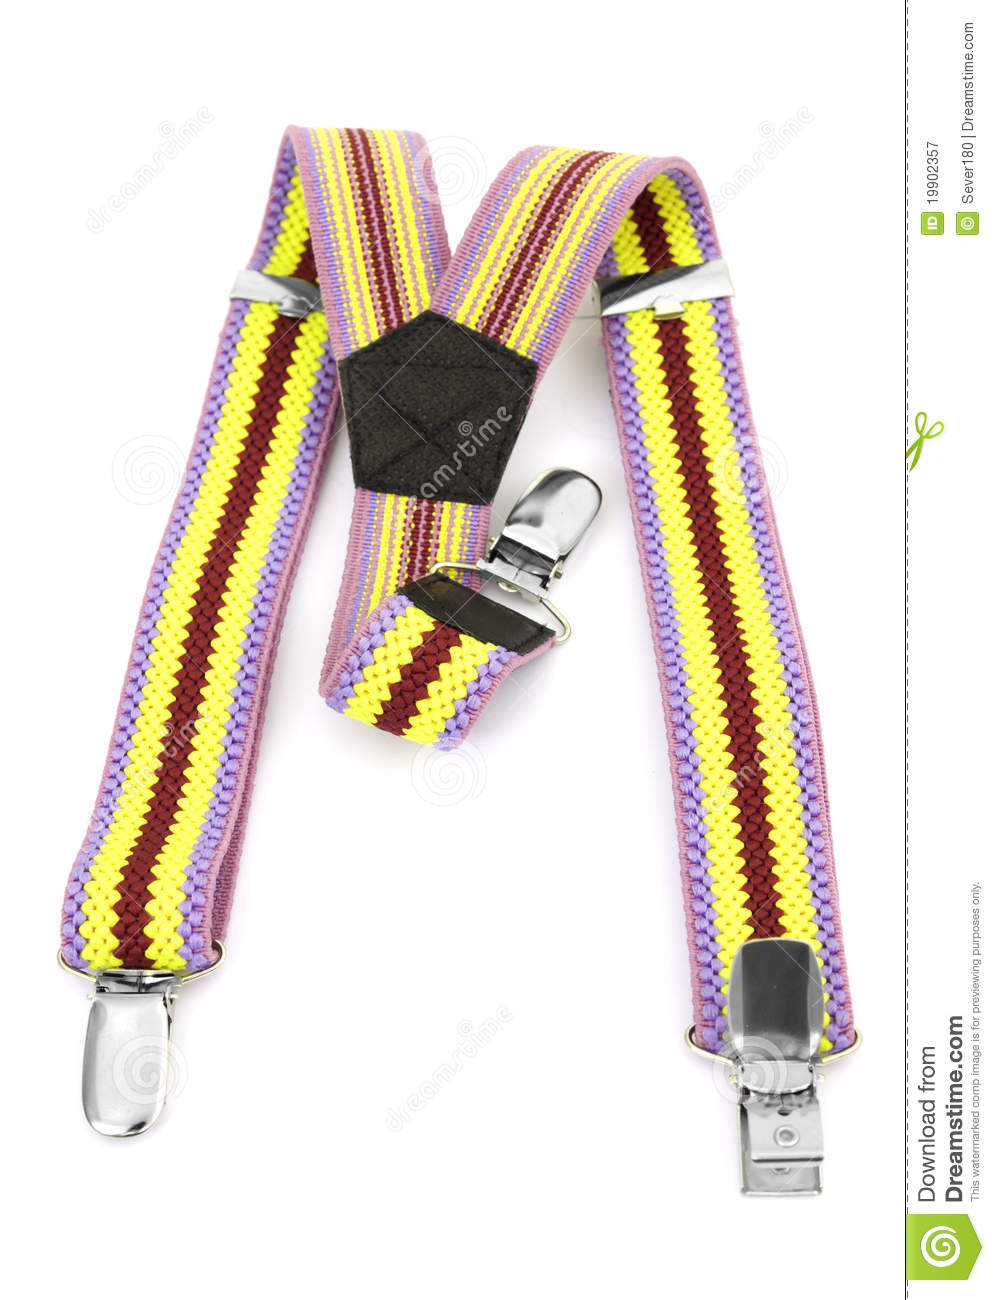 SUSPENDER COLORS. Whether you have a specific outfit in mind and you need just the right color suspenders to complete the look, or you want to outfit your group in matching suspenders for a wedding, theater production, restaurant staff or dance performance, SuspenderStore's Shop by Color feature is the perfect place to begin your search.